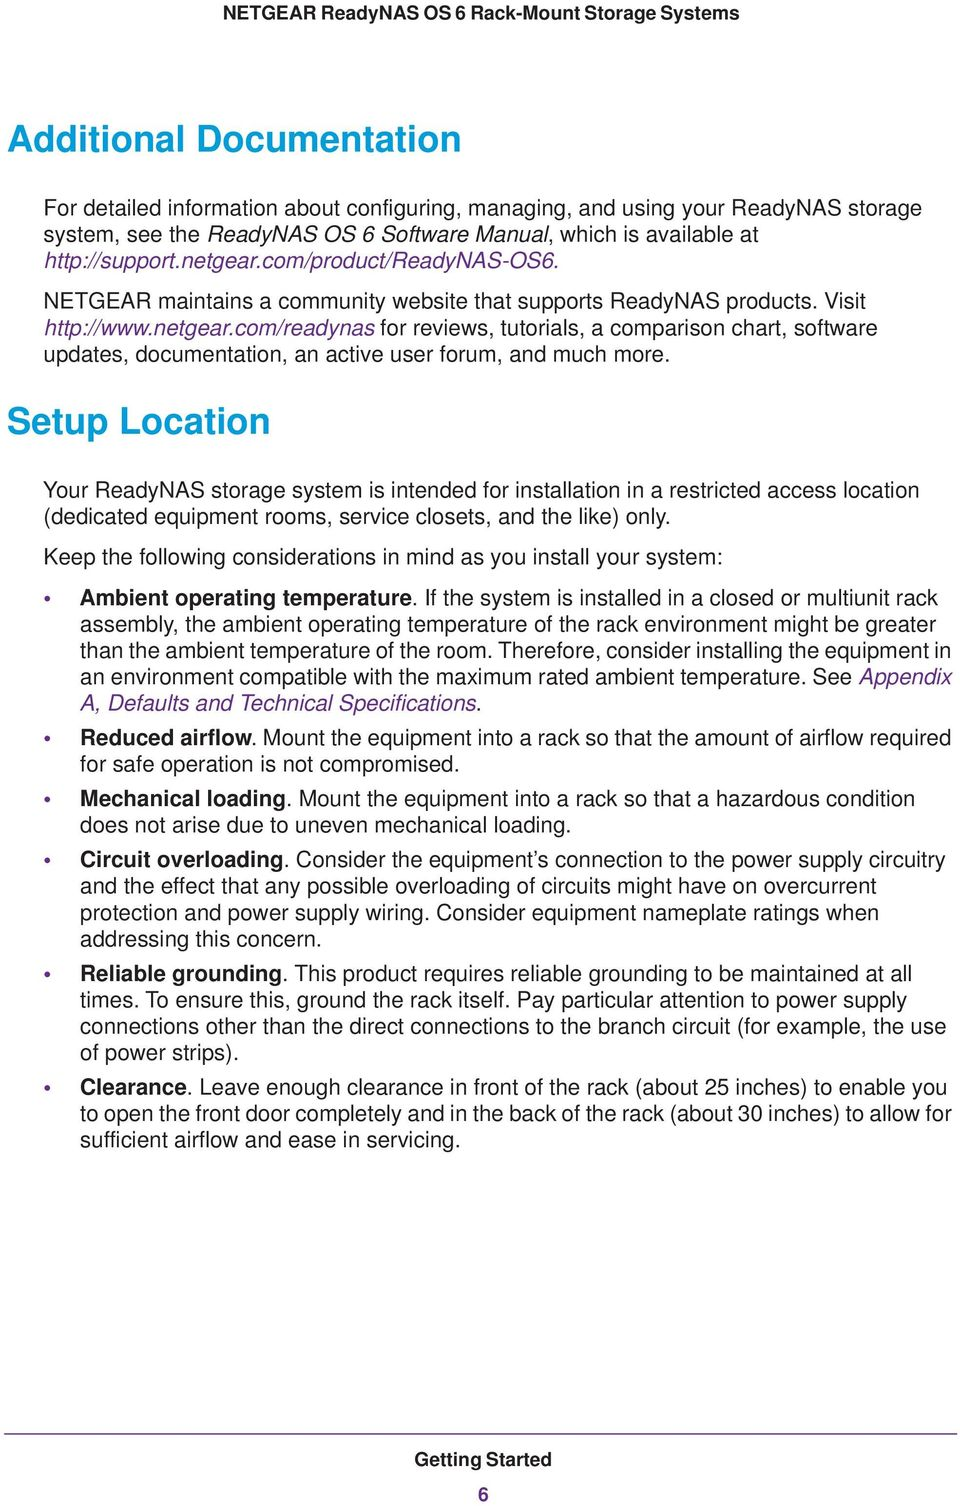 NETGEAR ReadyNAS OS 6 Rack-Mount Storage Systems - PDF